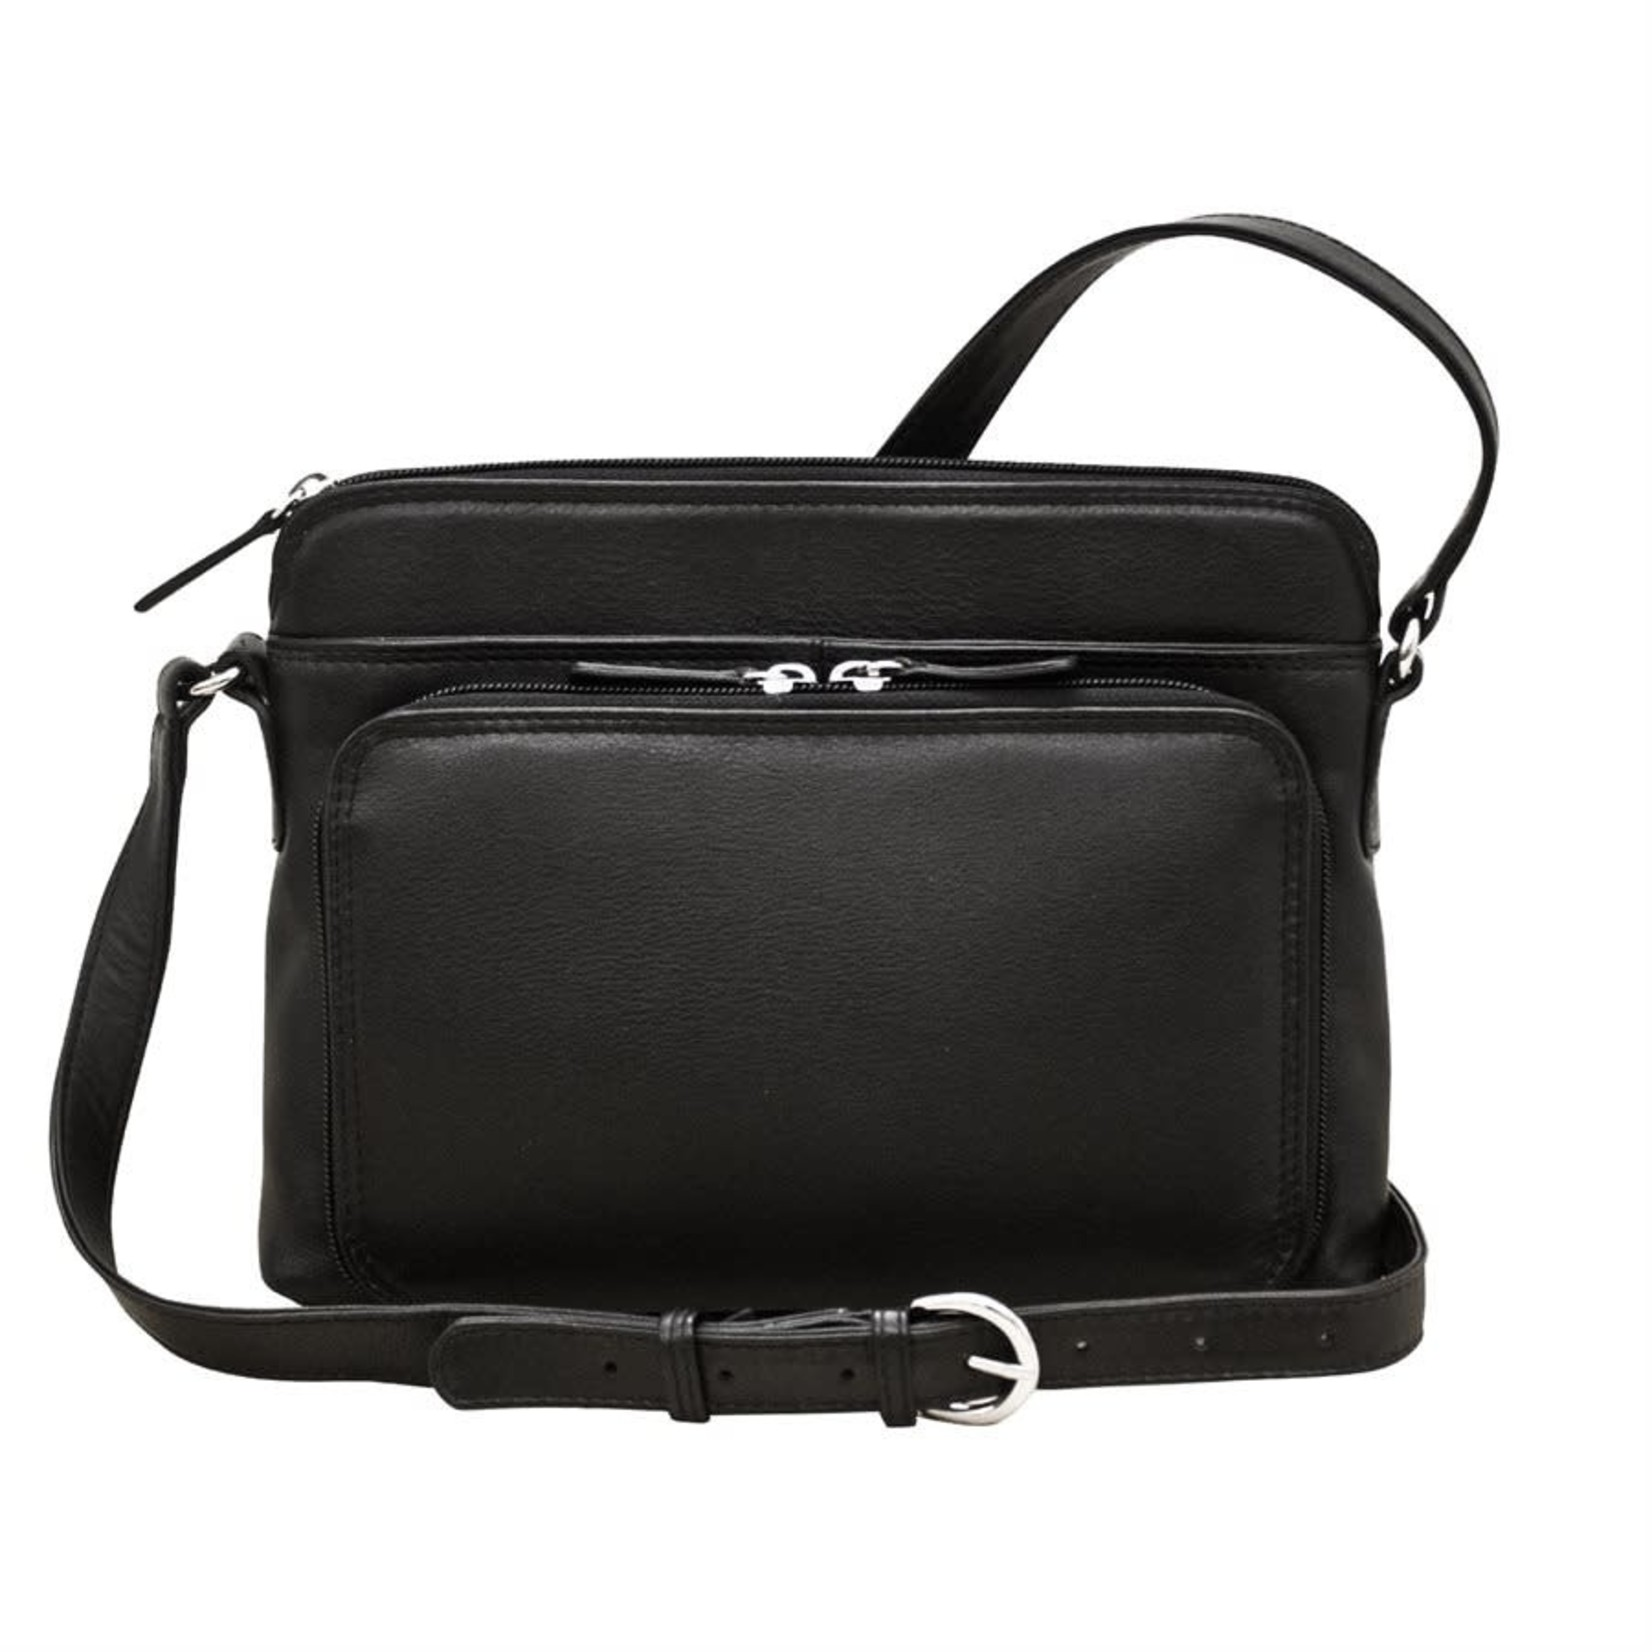 Leather Handbags and Accessories 6333 Black - Organizer Bag